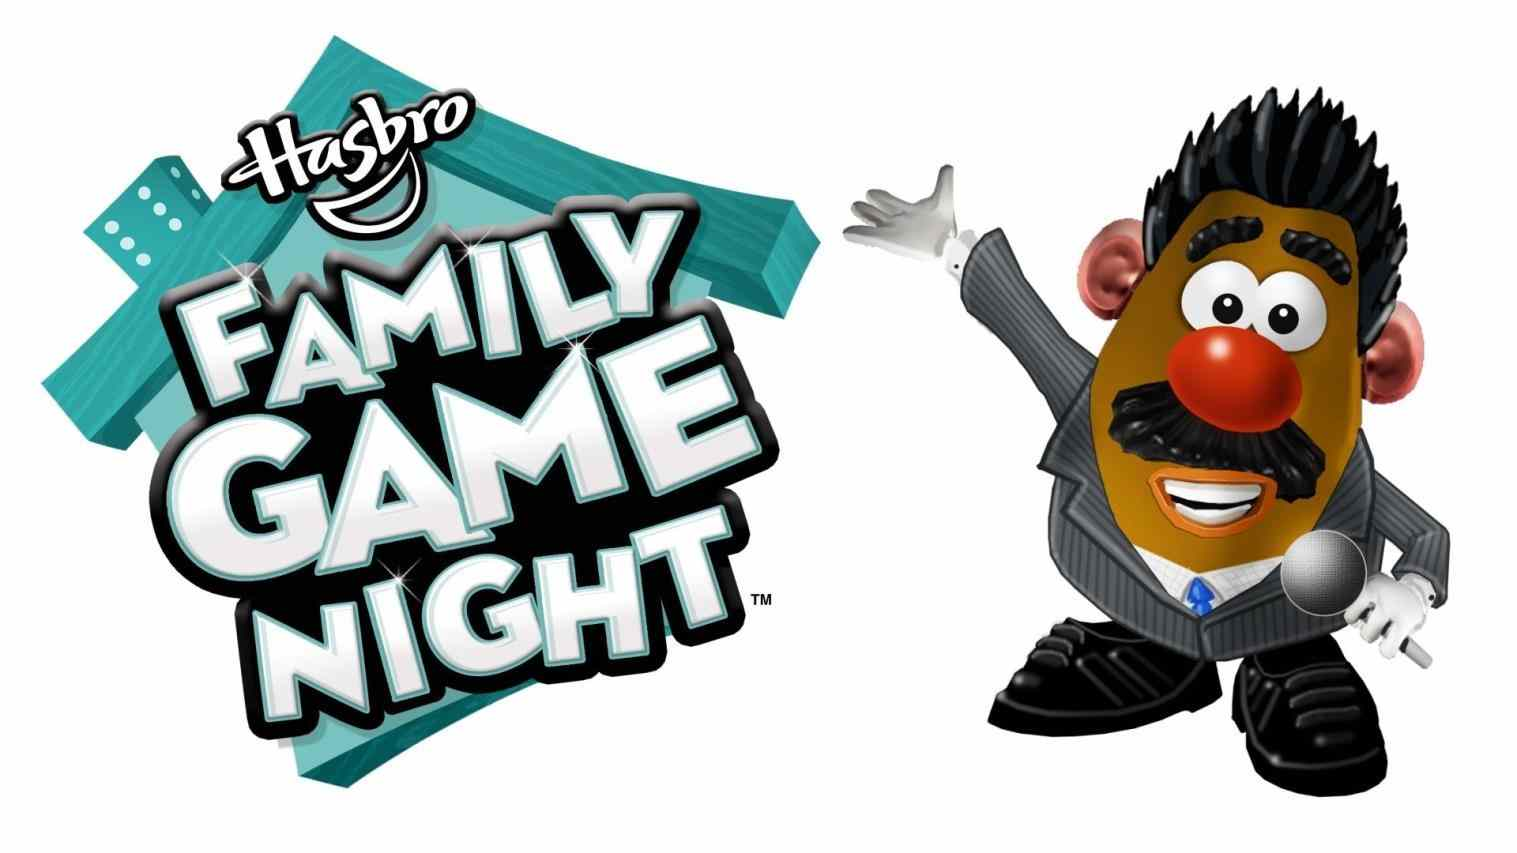 1517x853 Byutv Clip Art Clip Family Game Night Logo Art Tues S Board